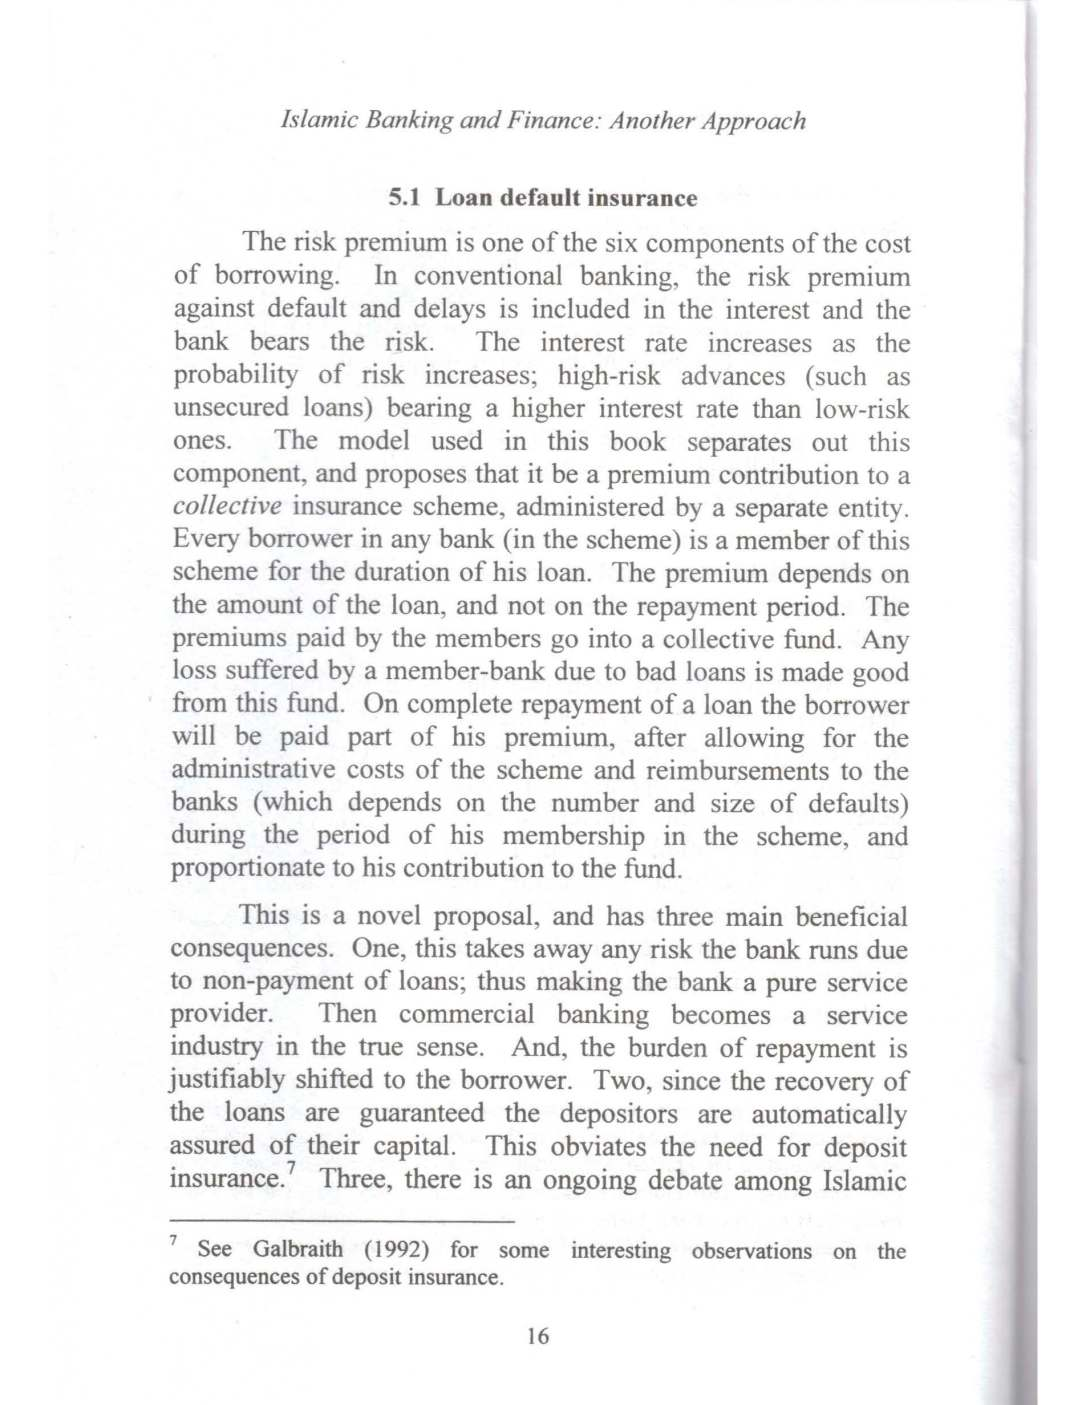 Islamic Banking and Finance - Another Approach_Page_17